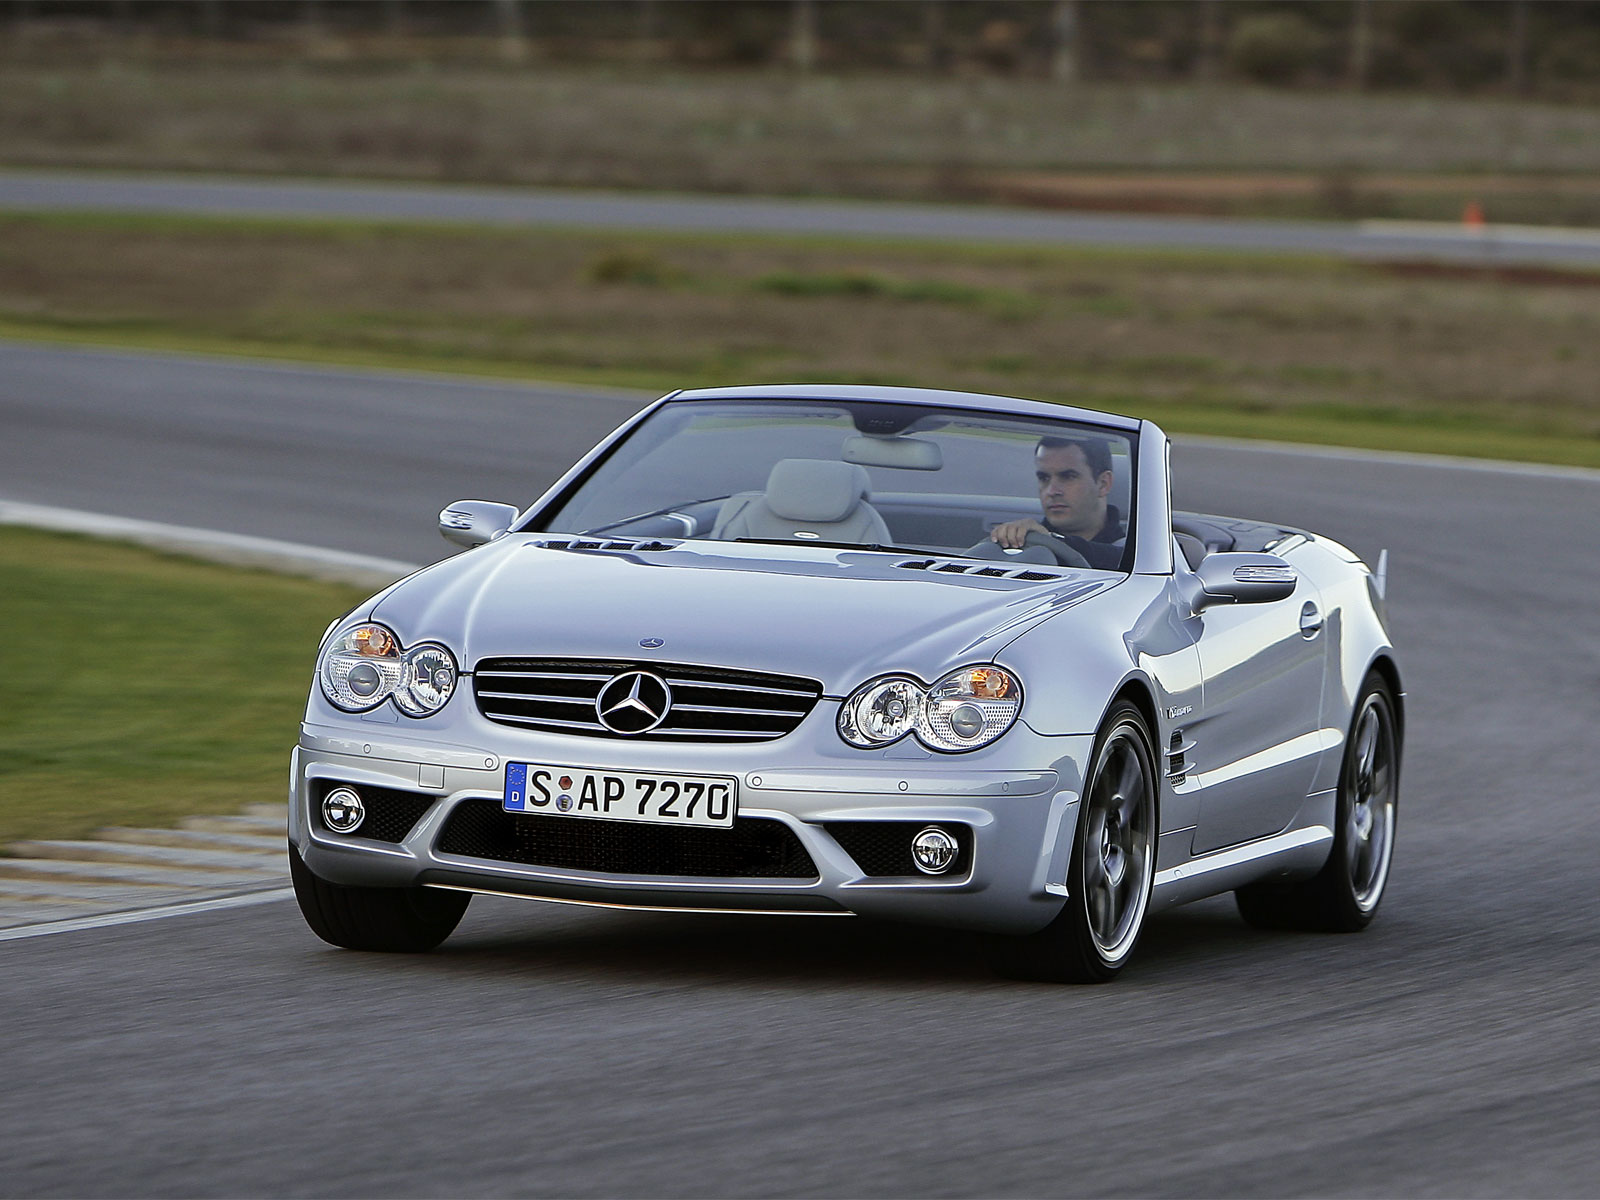 2006 mercedes benz sl class other pictures cargurus for 2006 mercedes benz sl55 amg